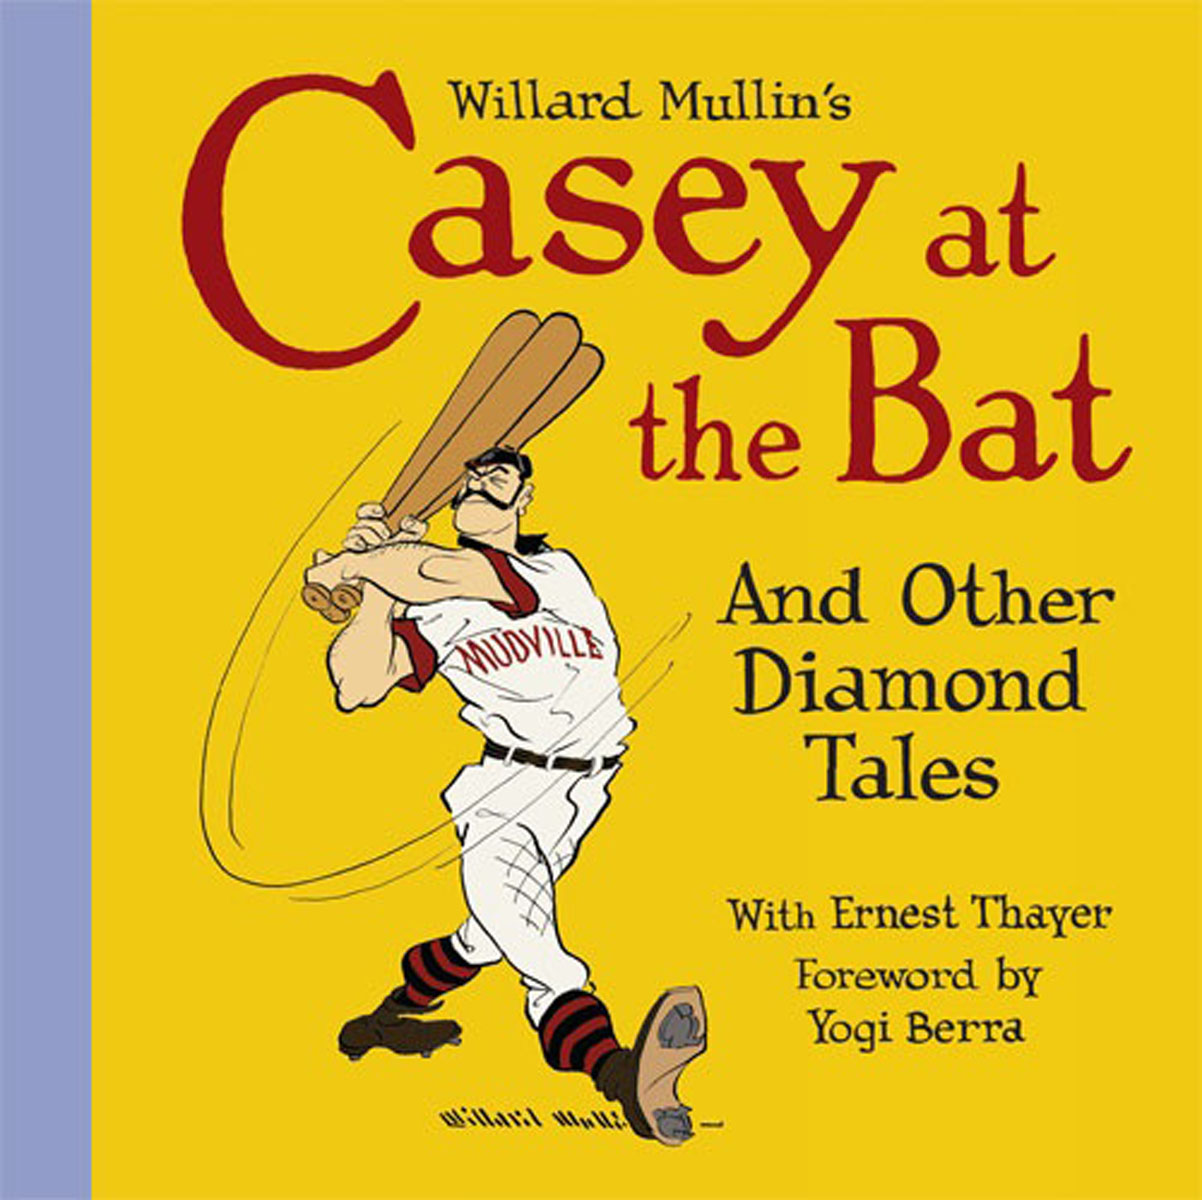 Willard Mullin's Casey at the Bat & Other Diamond Tales baseball history for kids america at bat from 1900 to today with 19 activities